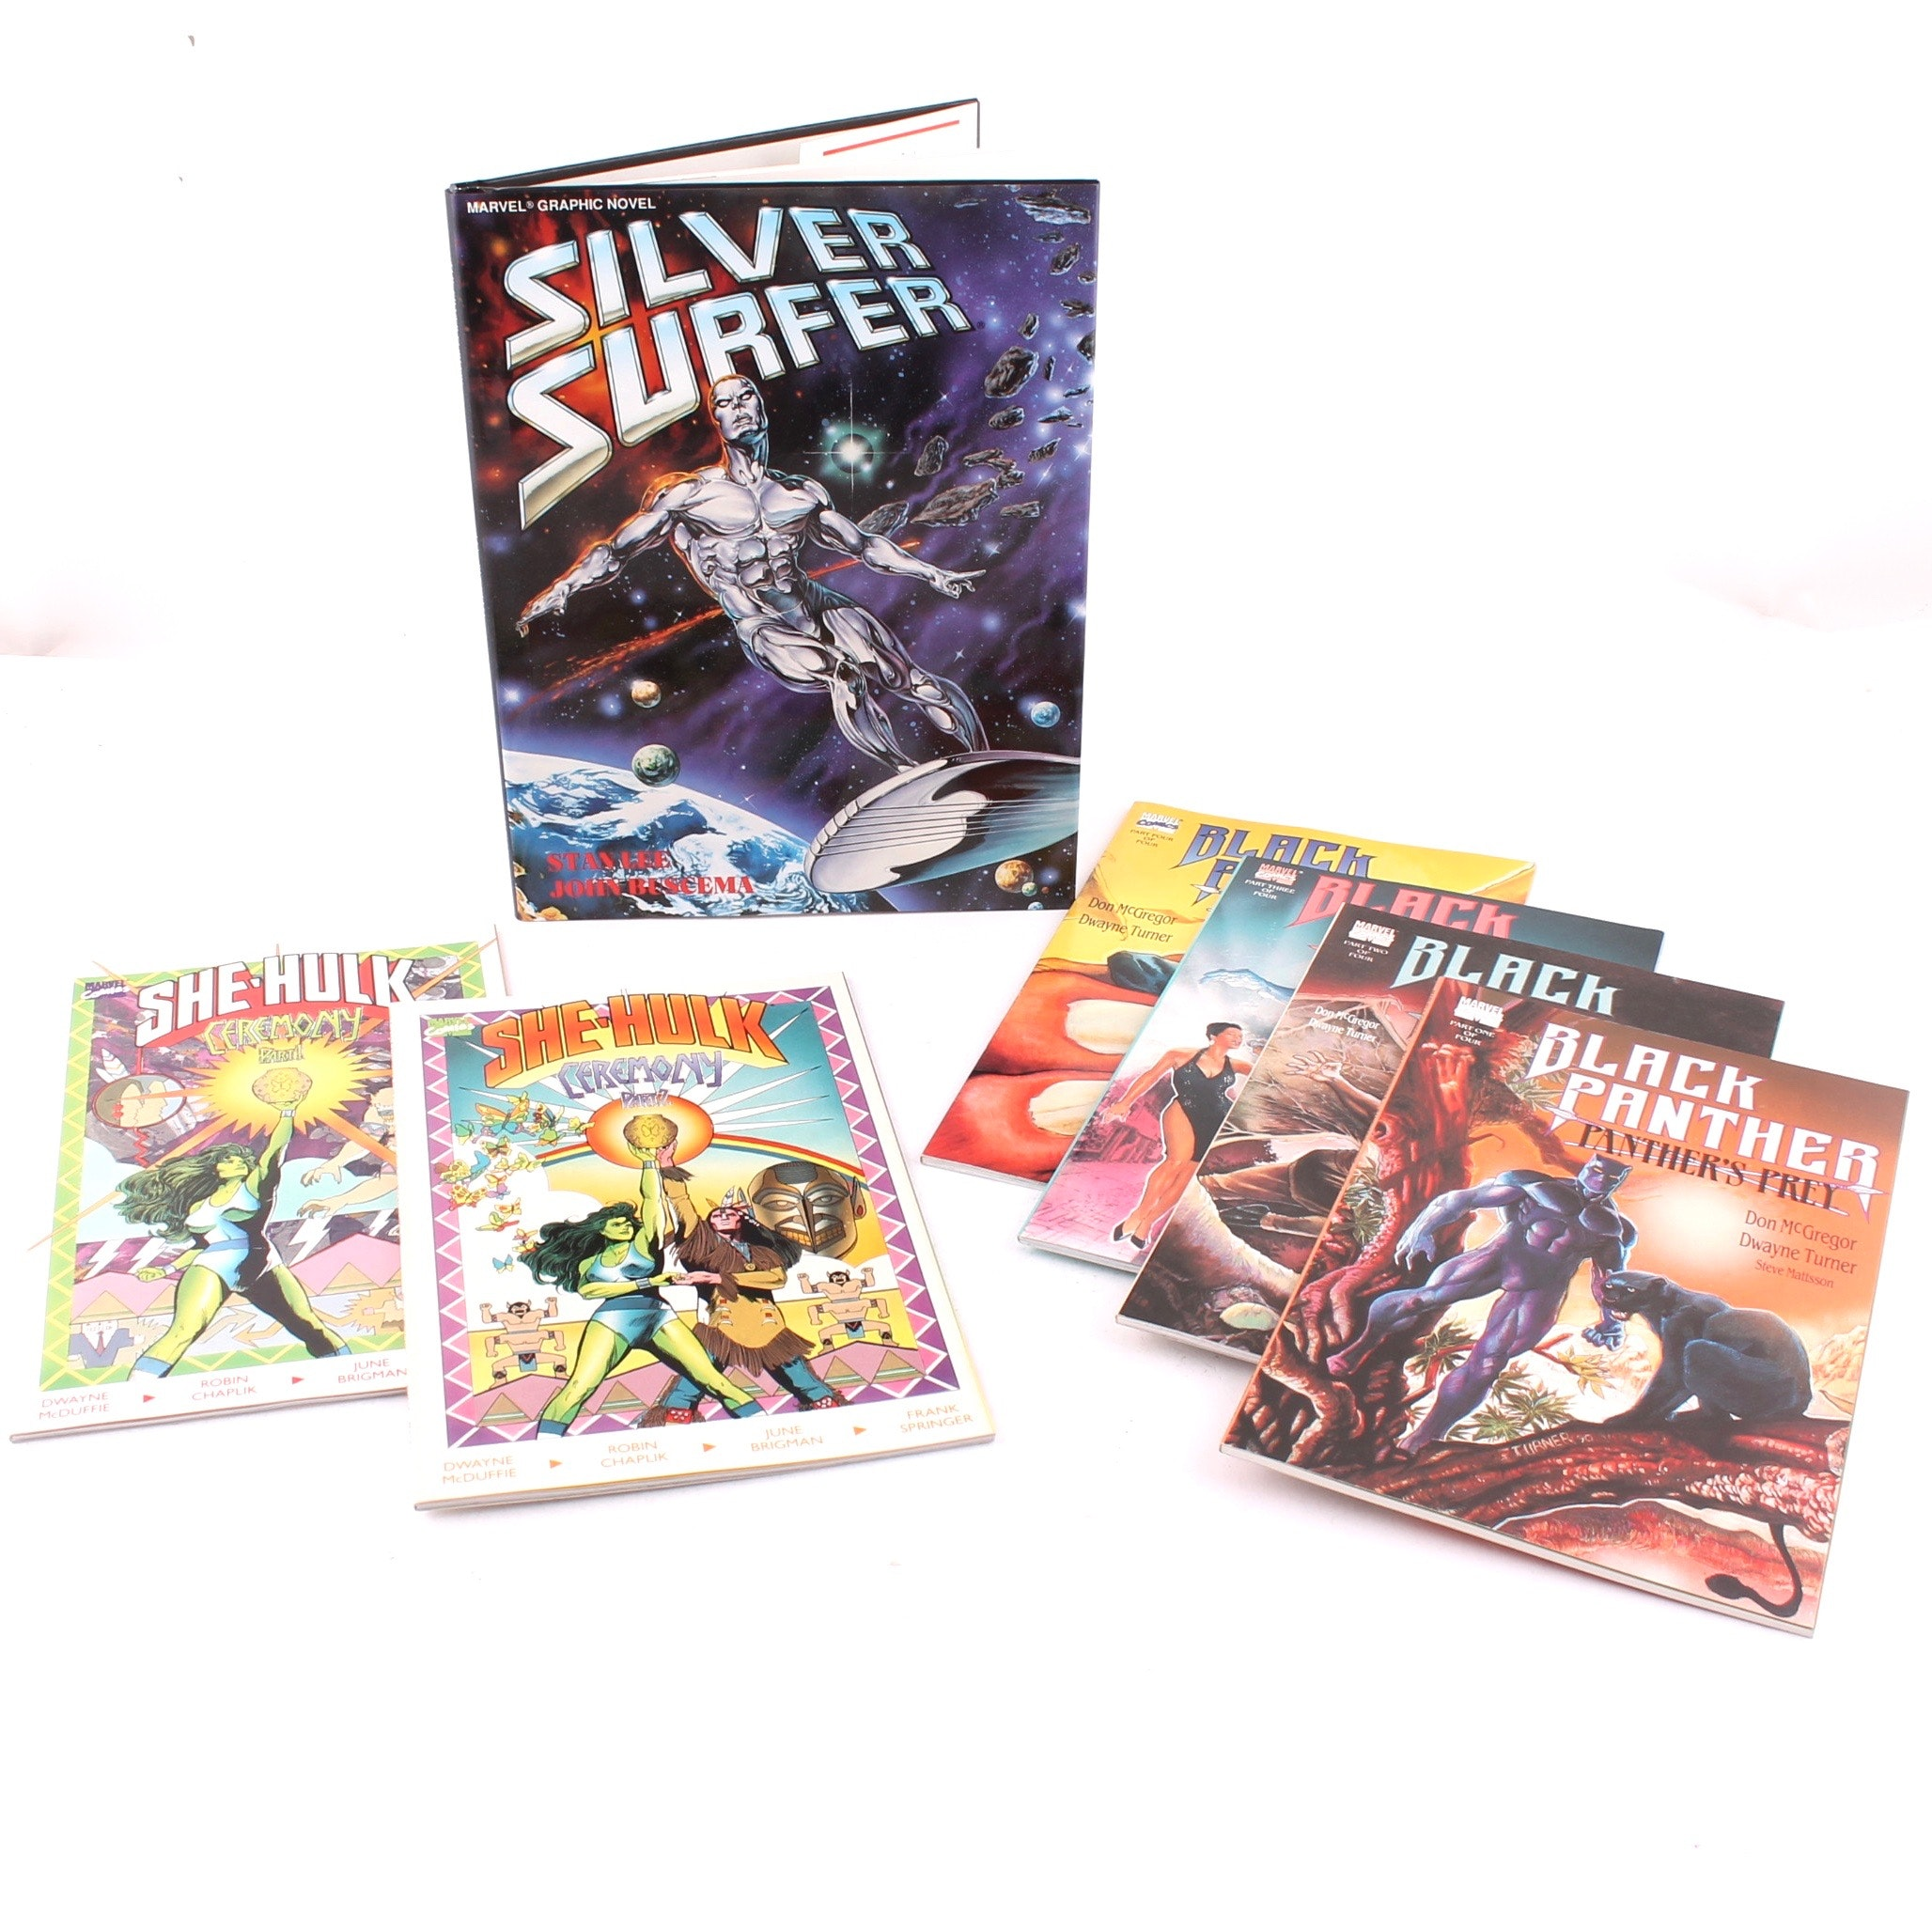 Marvel Graphic Novel Assortment Featuring Black Panther